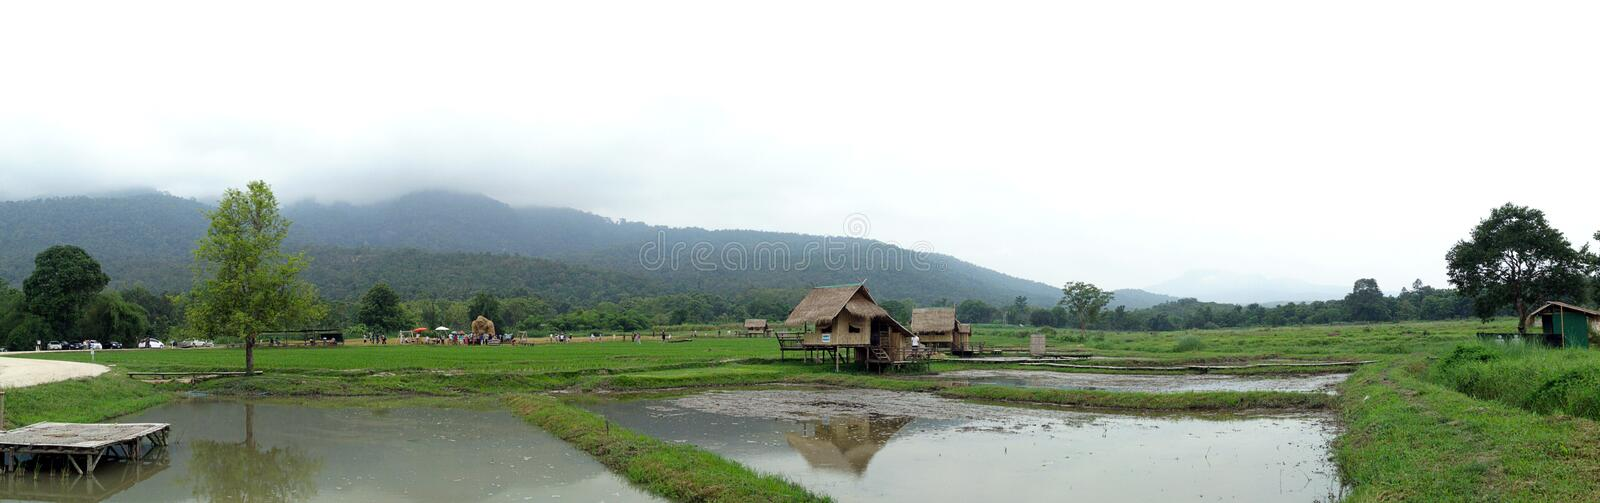 Field, paddy field, The countryside of rural Thailand royalty free stock photos